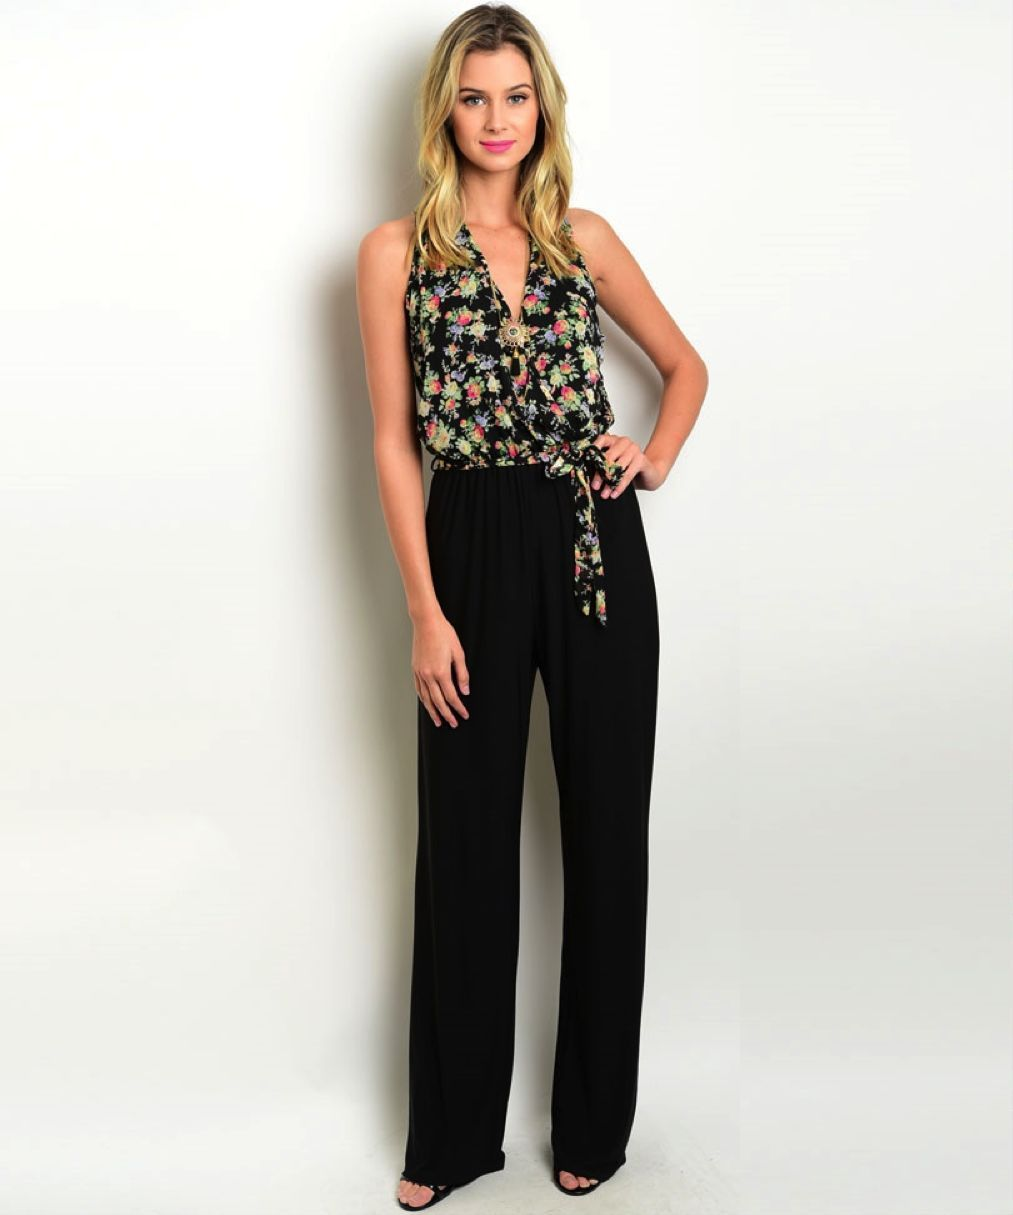 Sexy Black Pants, Floral Top Jrs Party Jumpsuit Romper, Polyester S, M, L - Blac